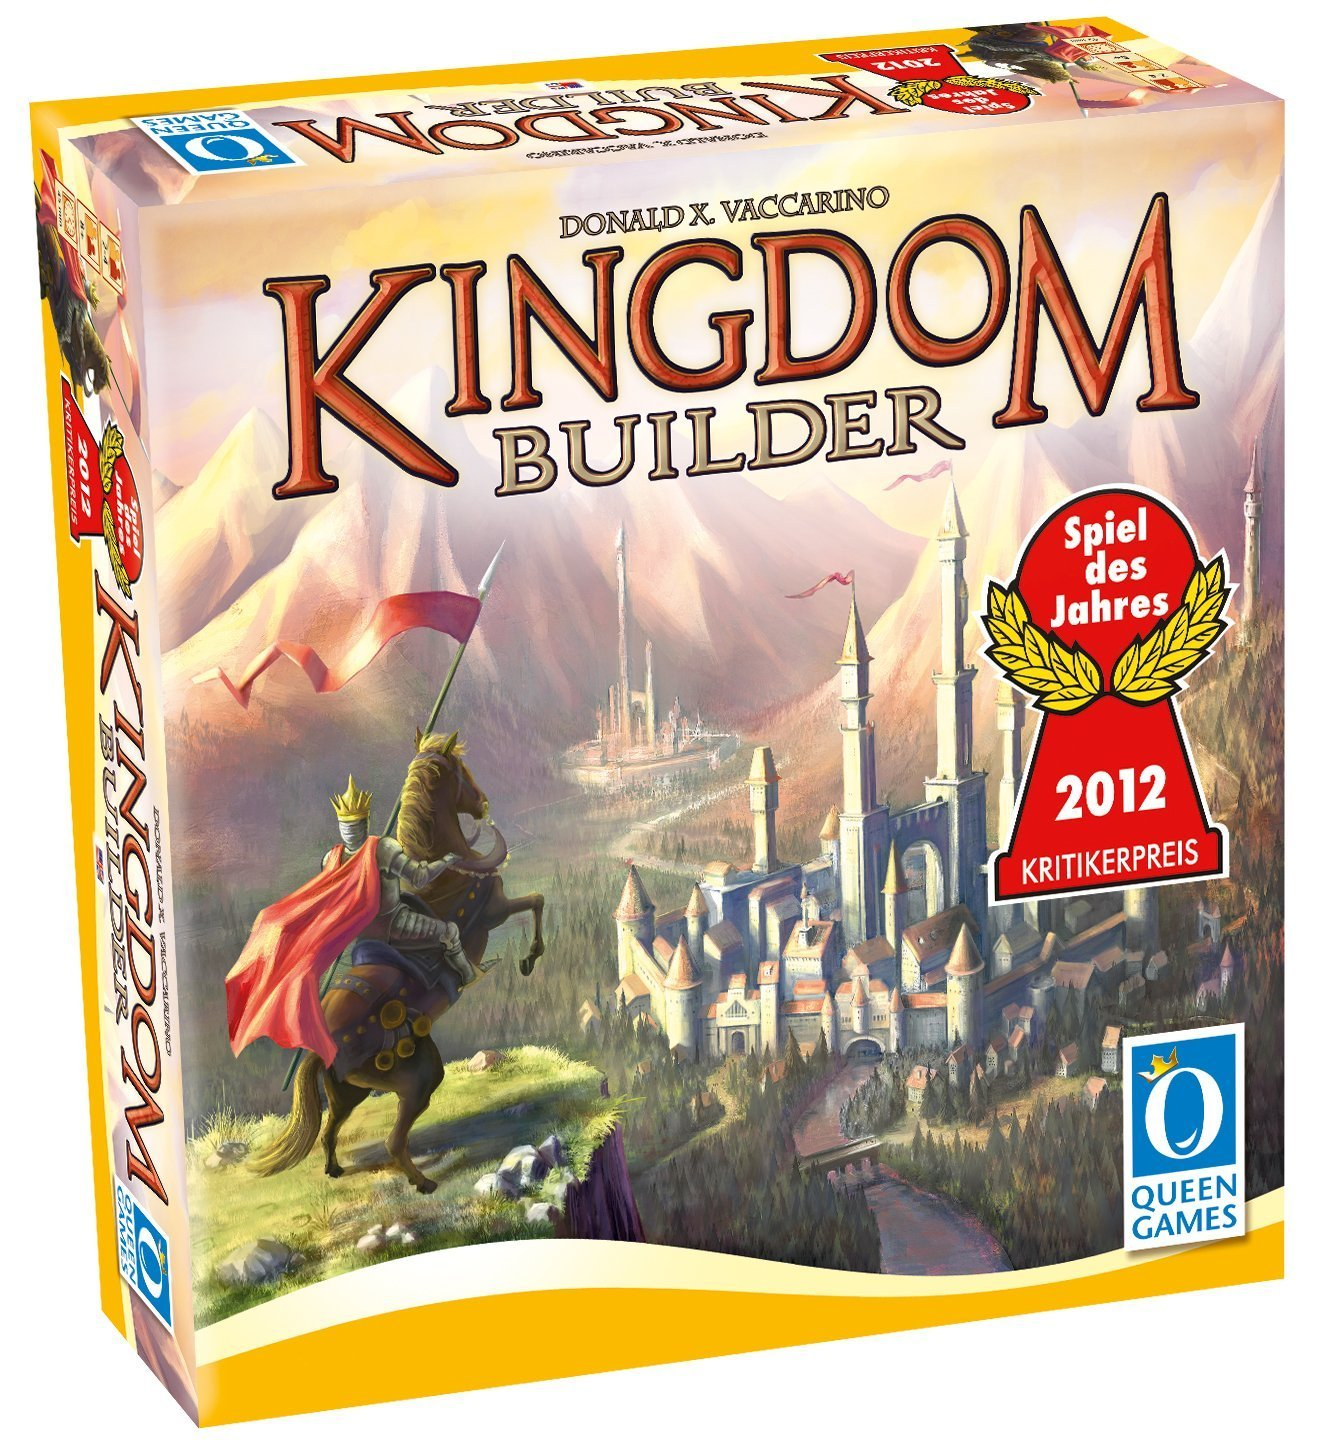 Kingdom Builder - KingdomBuilder might be my all-time favorite game. Never has a game packed such a simple mechanic with so much strategy and ever-changing Gameplay combinations.